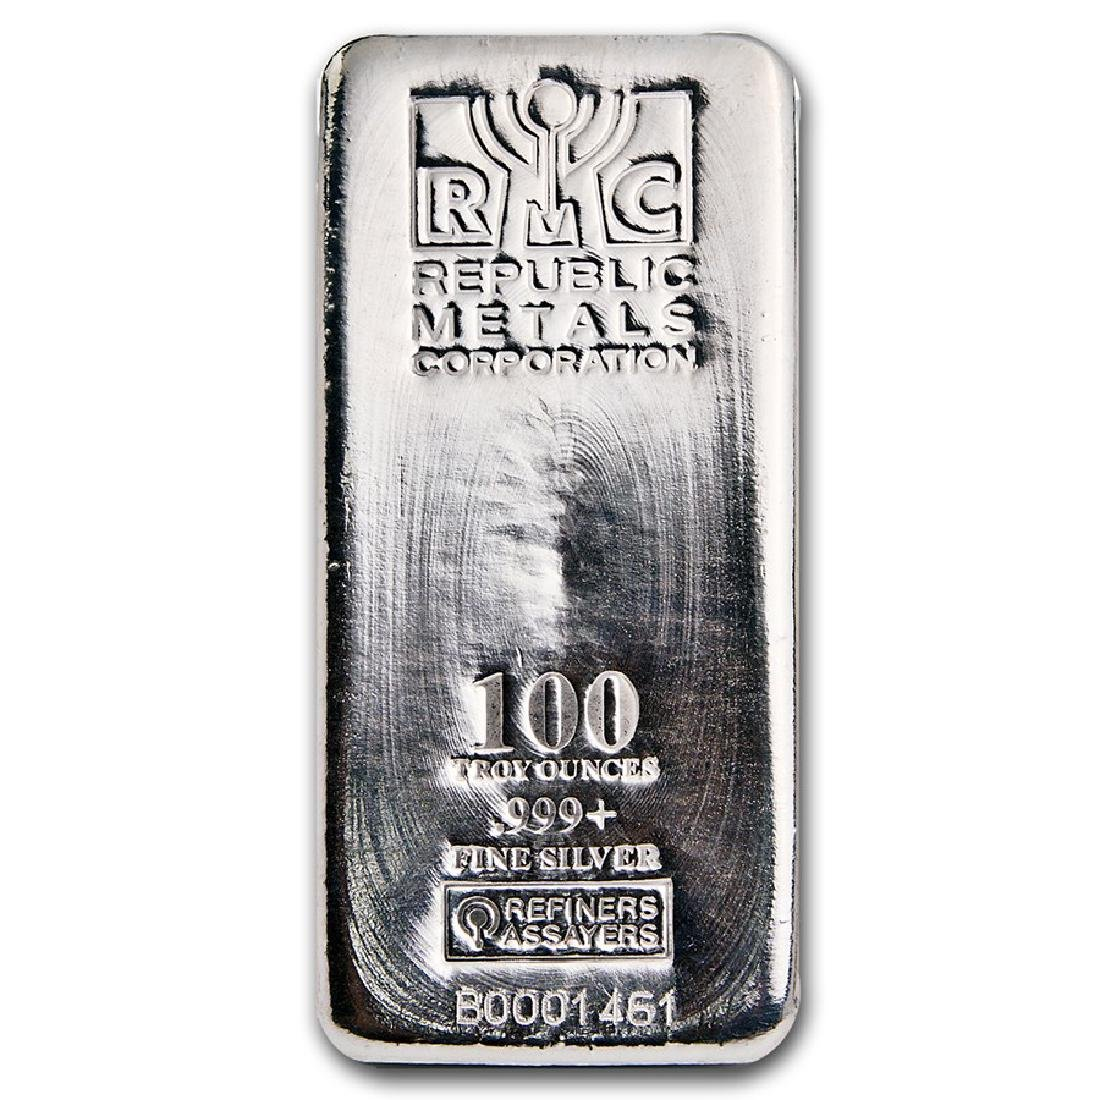 One piece 100 oz 0.999 Fine Silver Bar Republic Metals